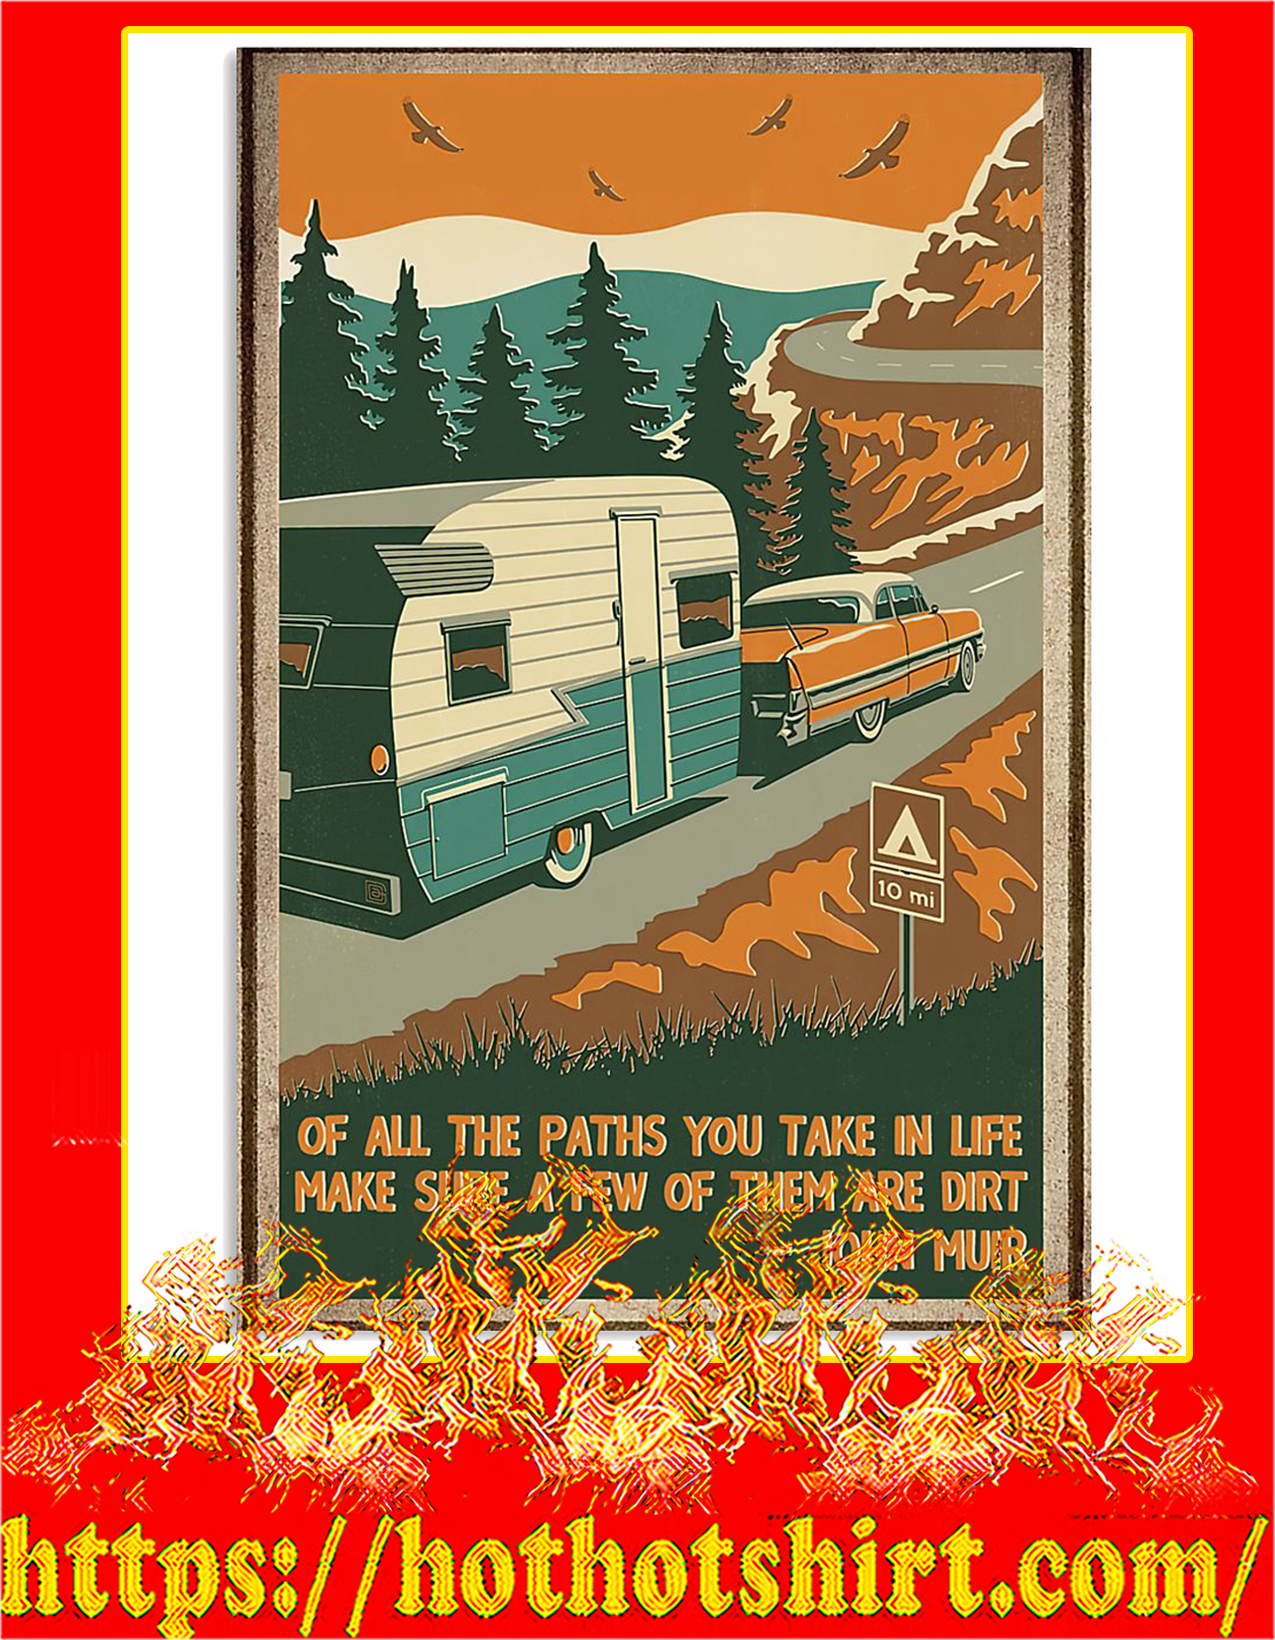 Of all the paths you take in life make sure a few of them are dirt john muir poster